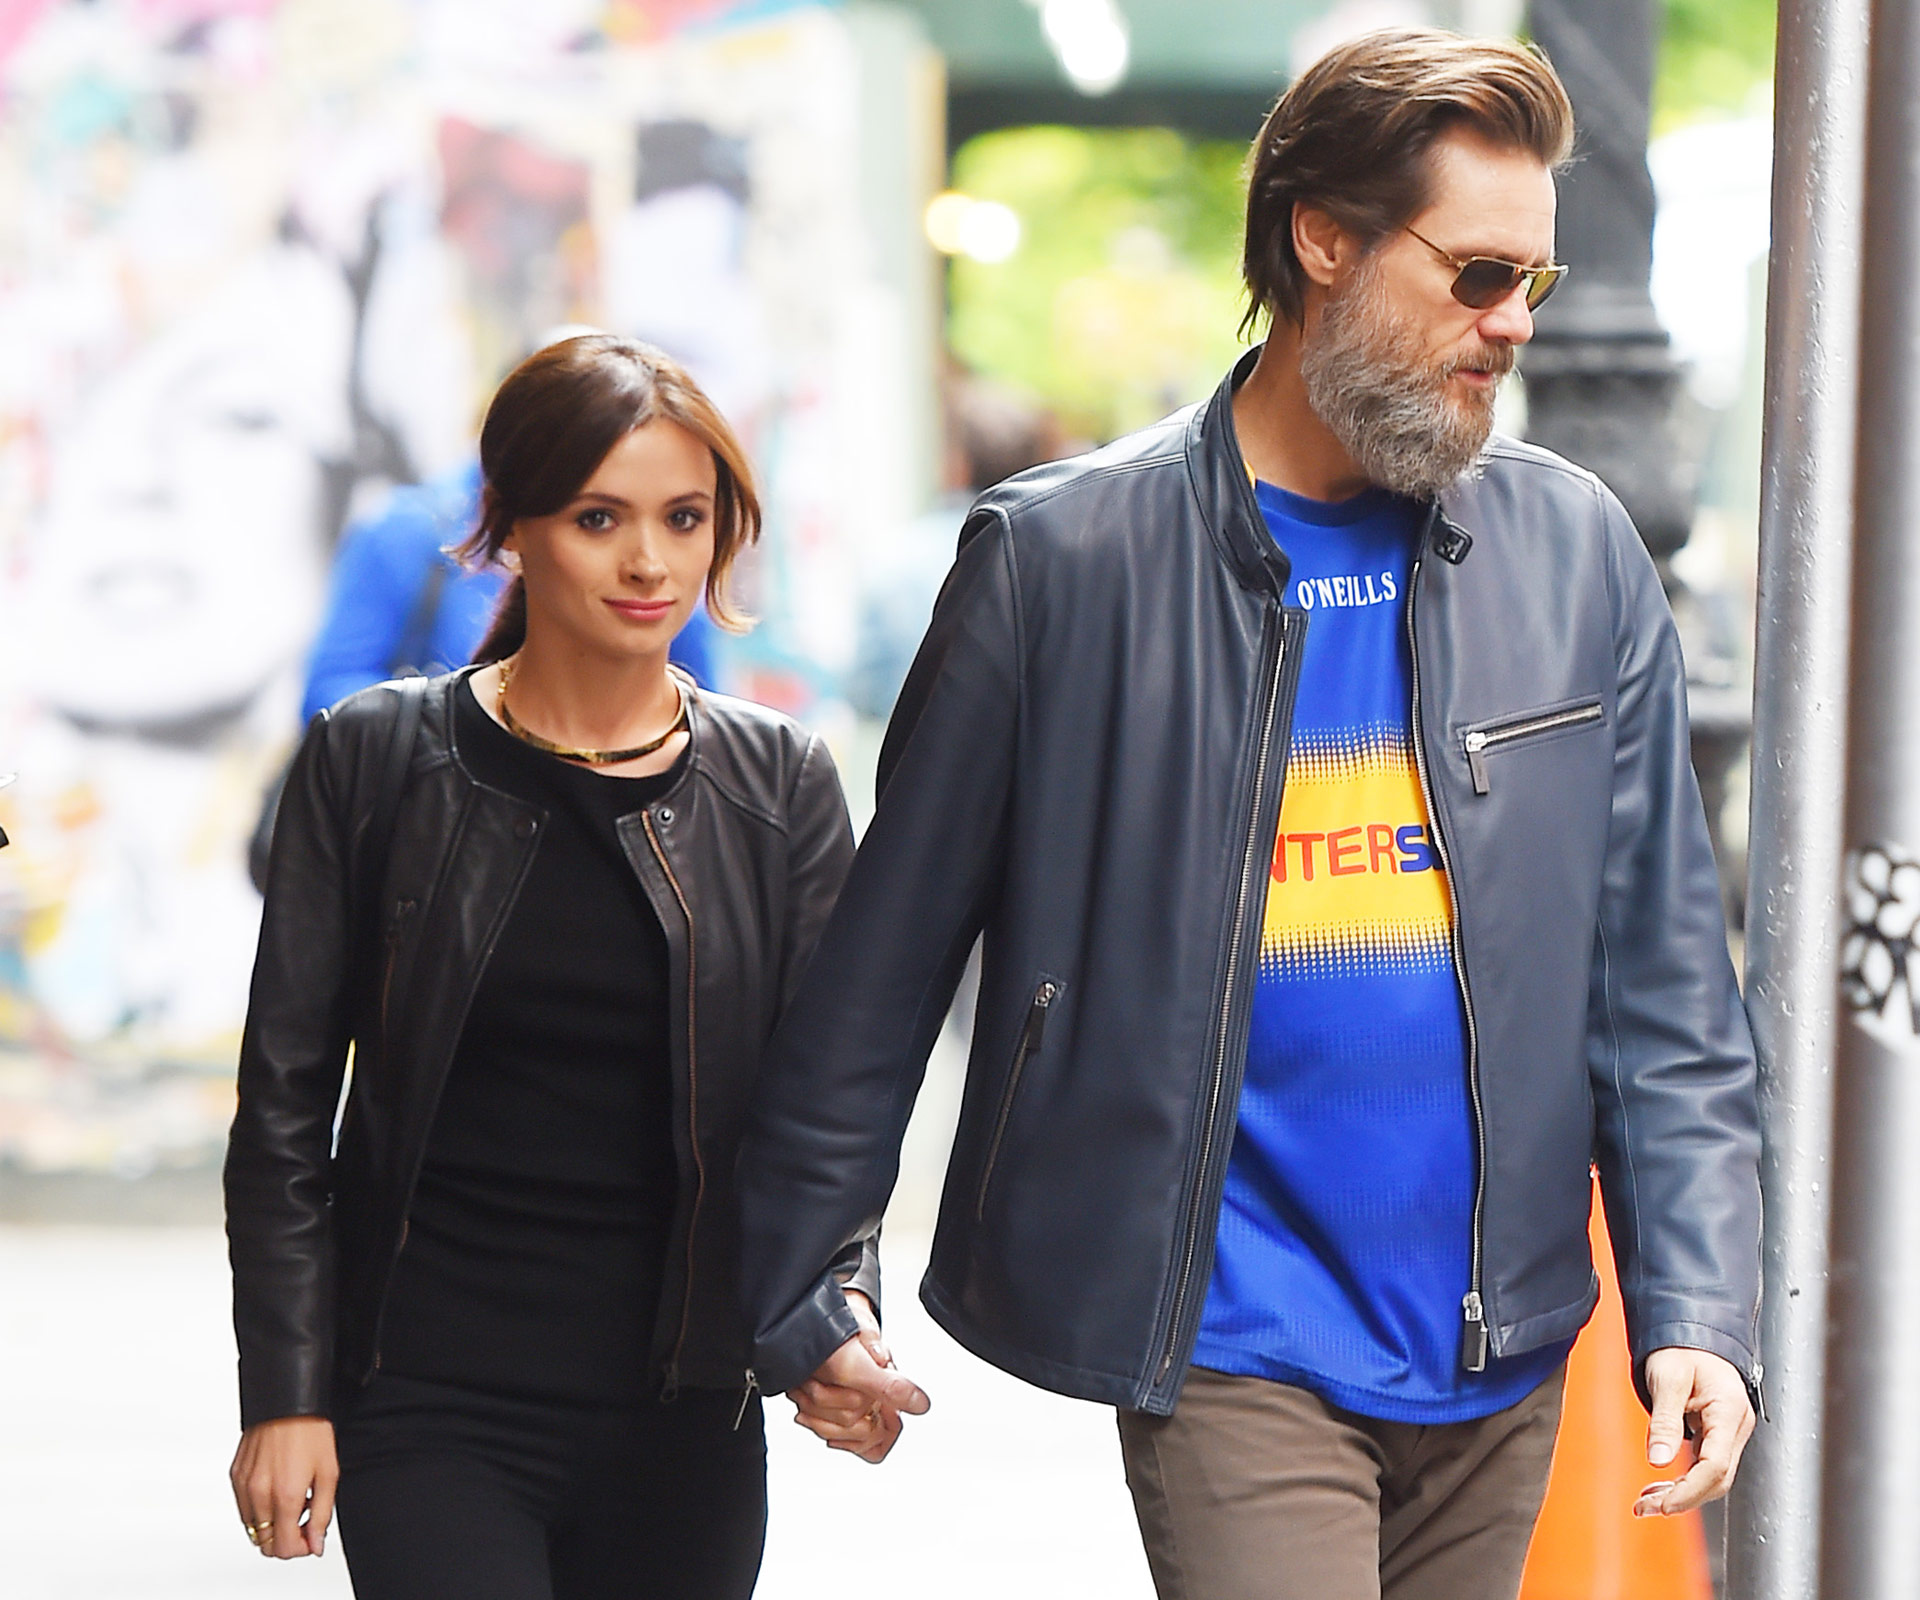 Jim Carrey faces second wrongful death lawsuit